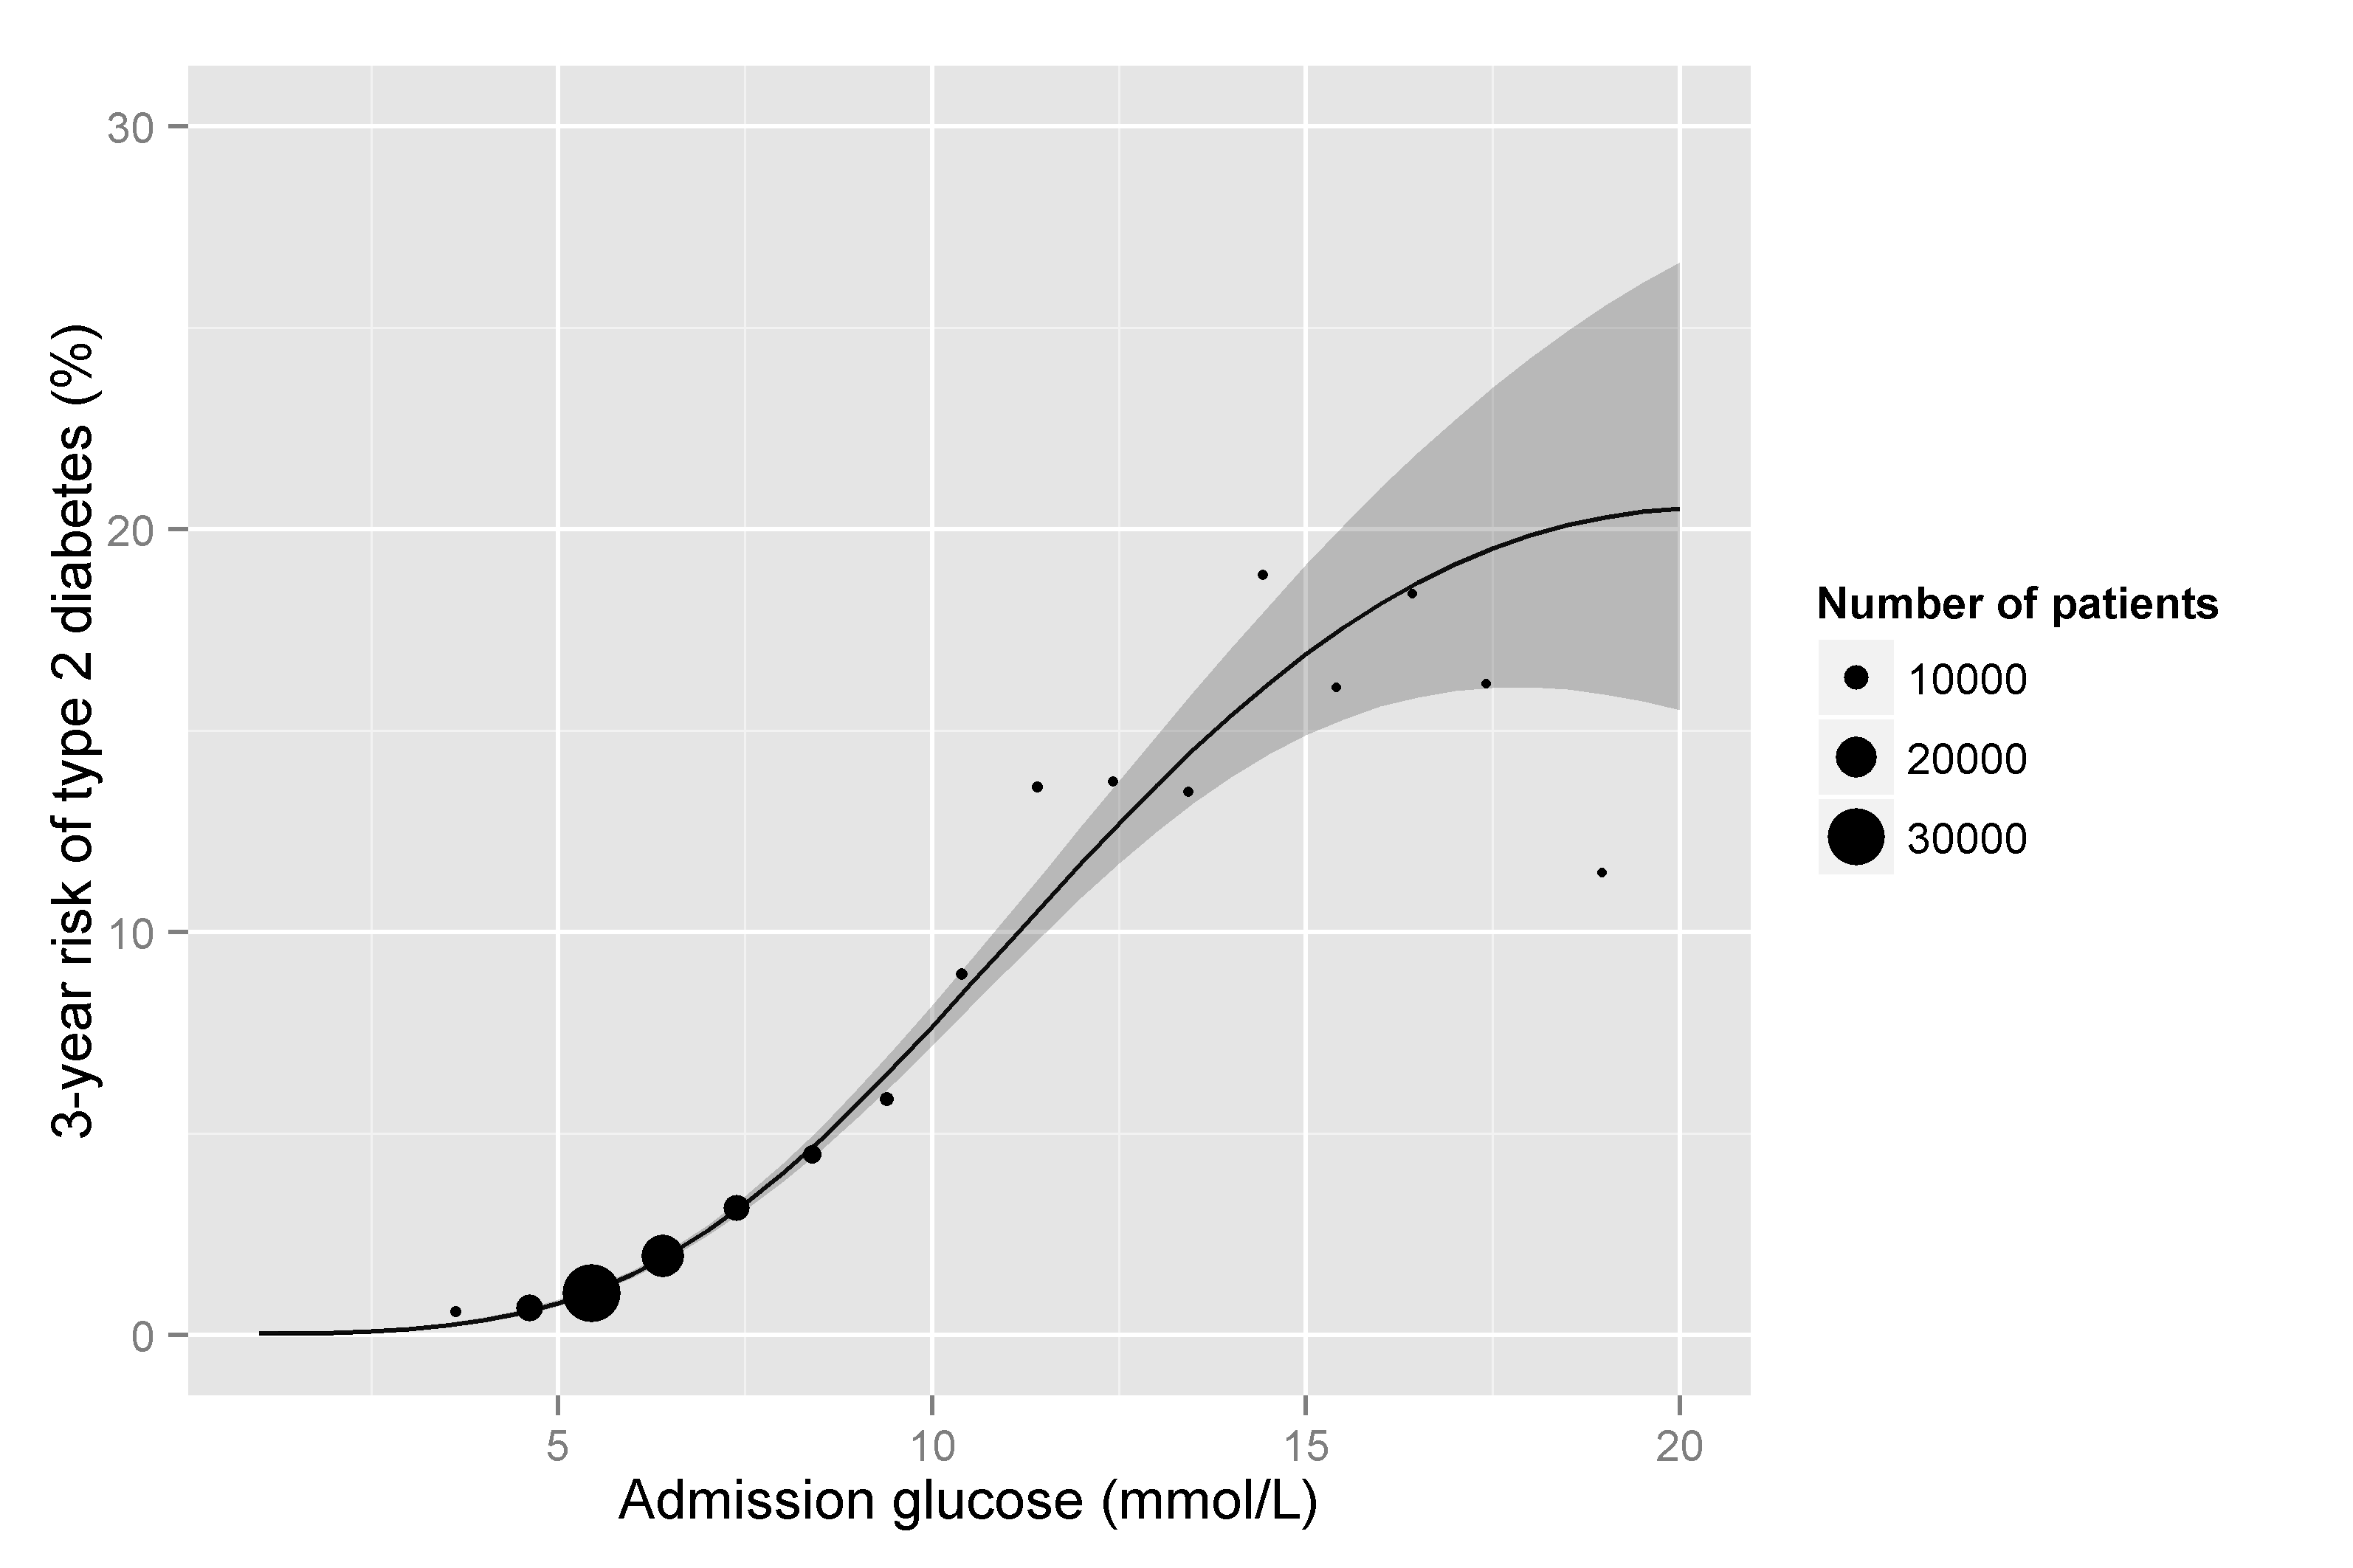 3-year risk of type 2 diabetes by admission glucose.